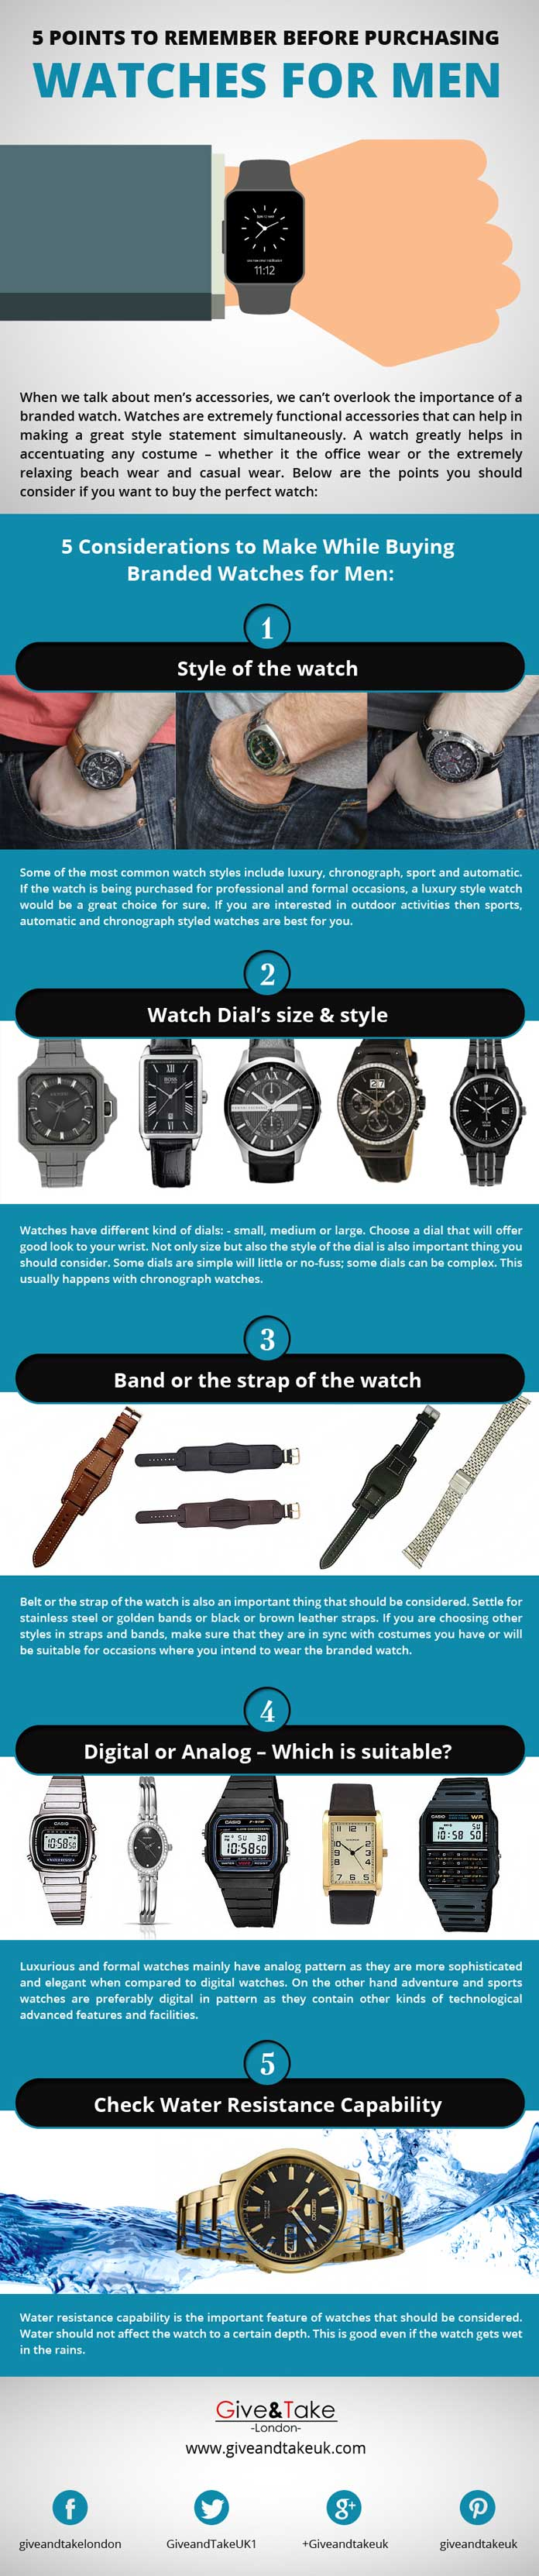 5-Points-to-Remember-before-Purchasing-Watches-for-Men